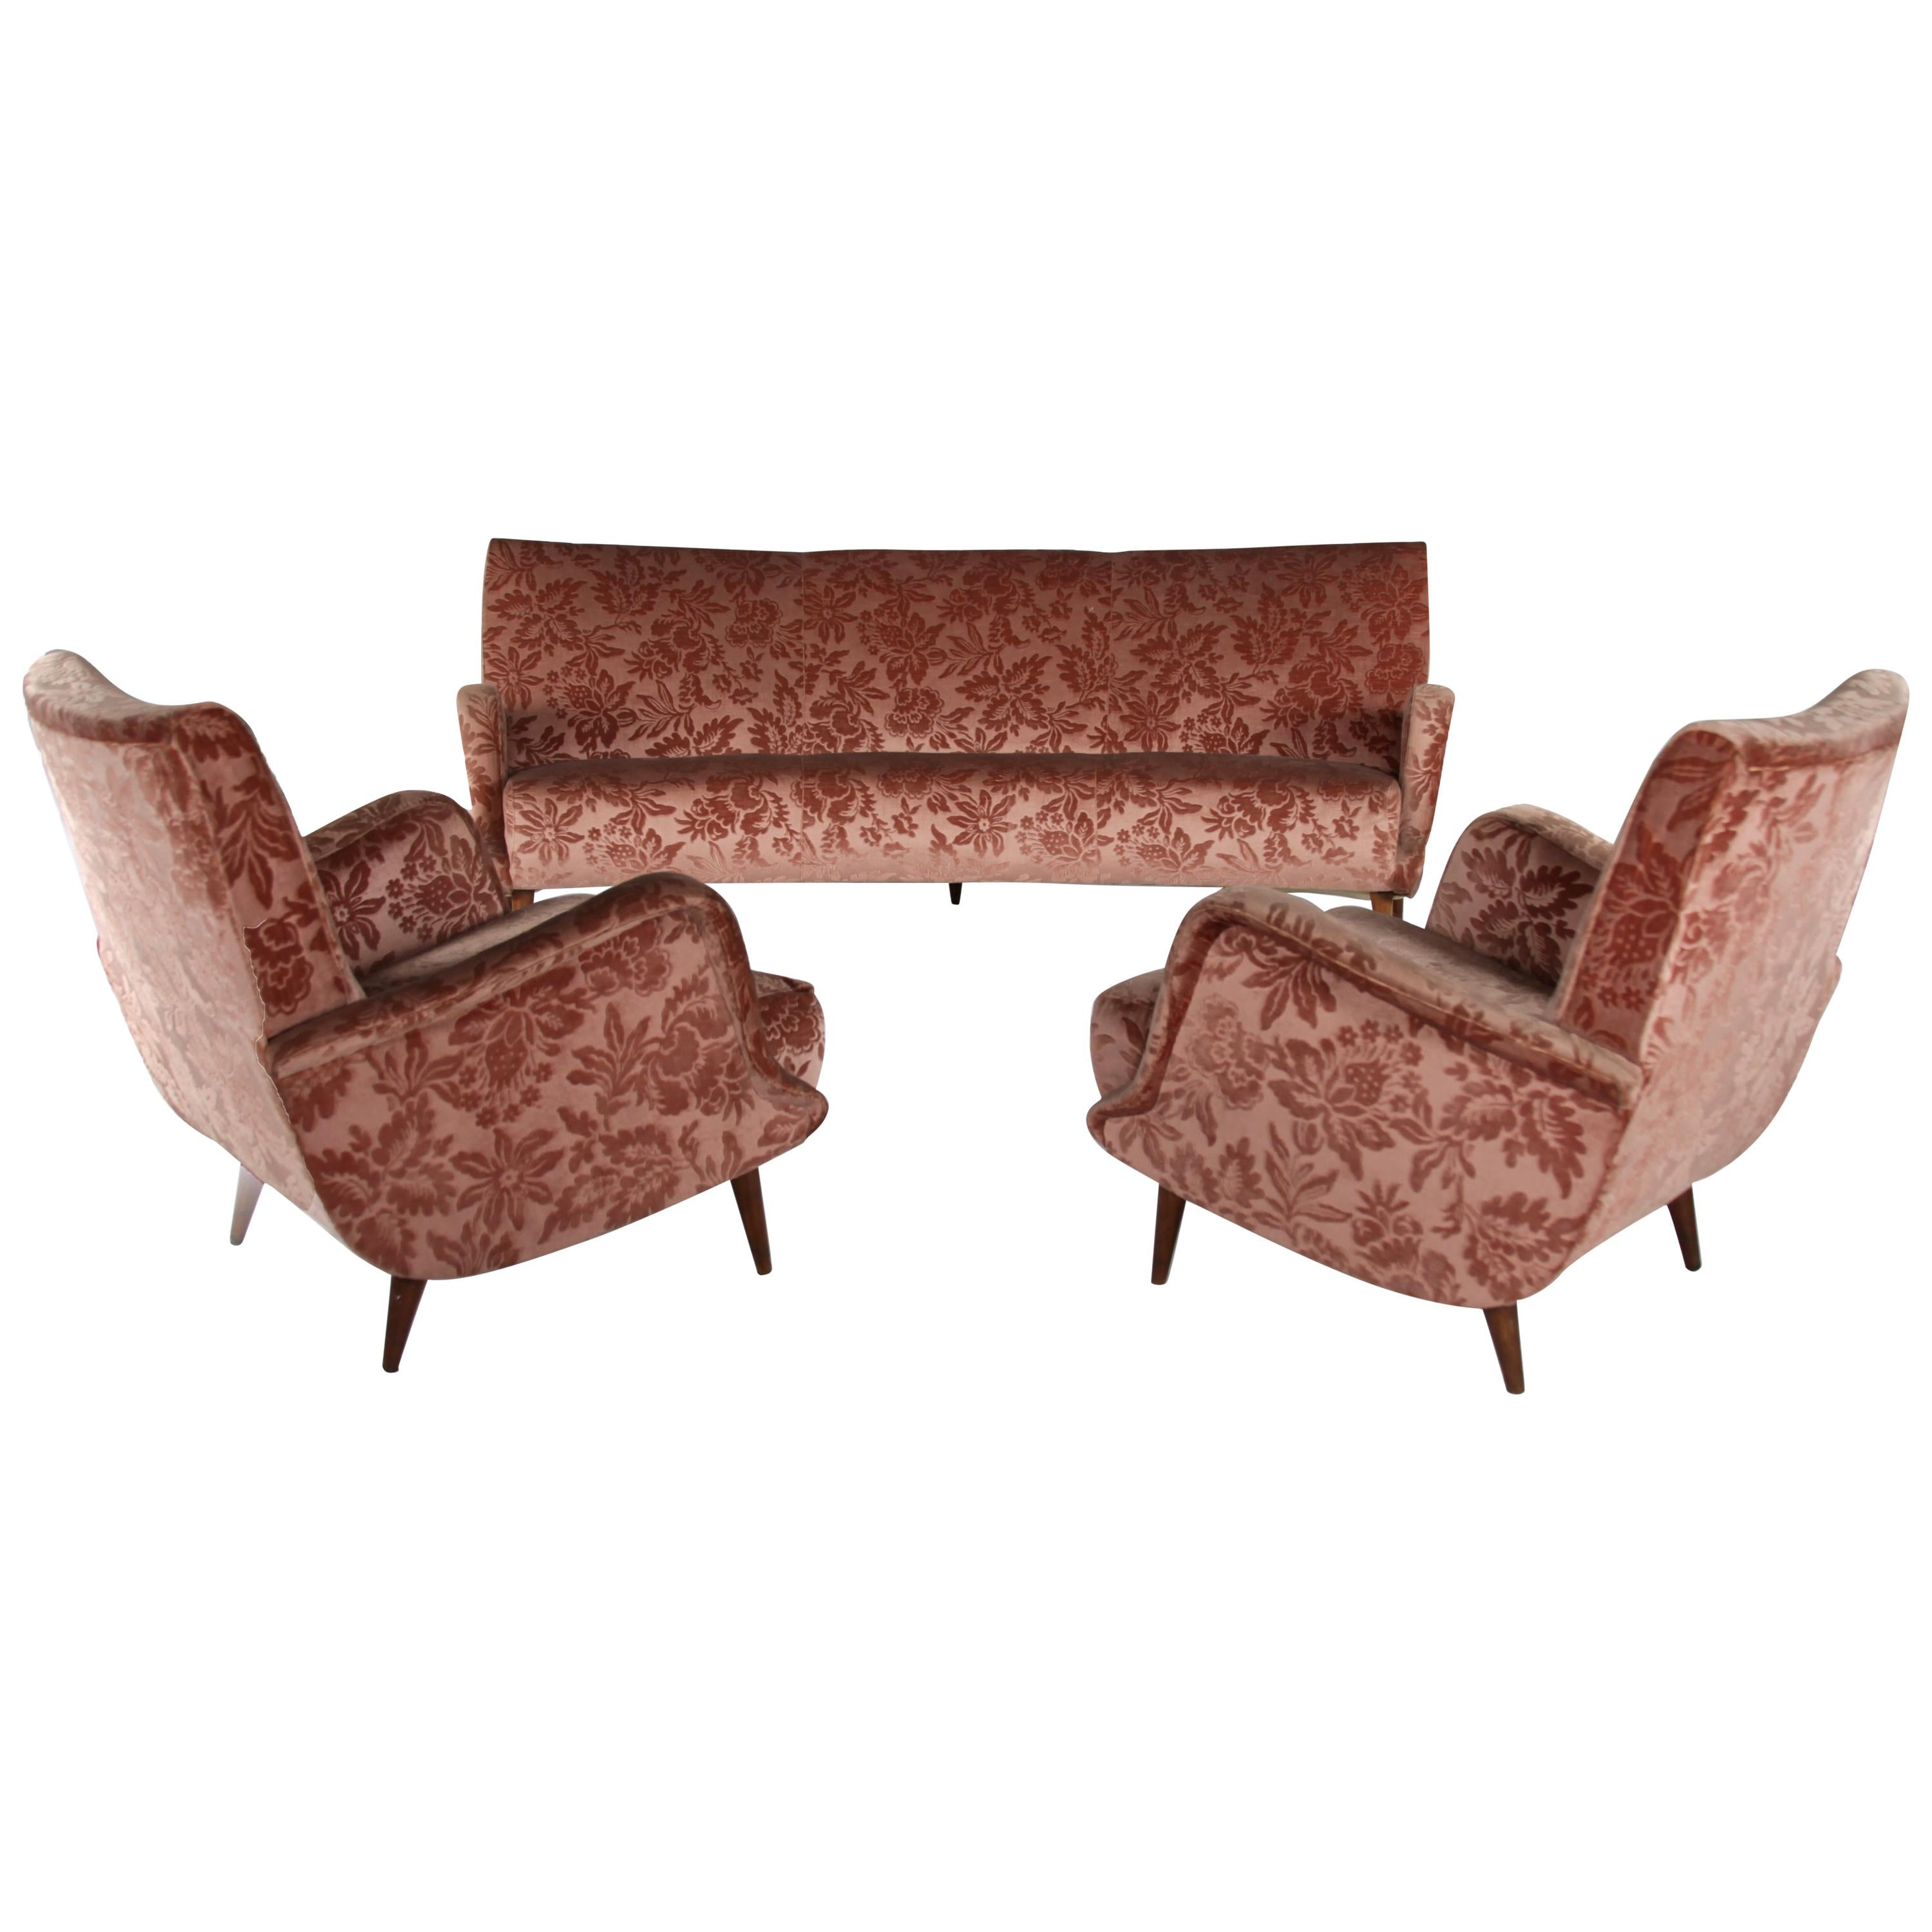 """Set of 2 Armchairs and 1 Sofa from """"806"""" Series, by Carlo de Carli, Cassina"""